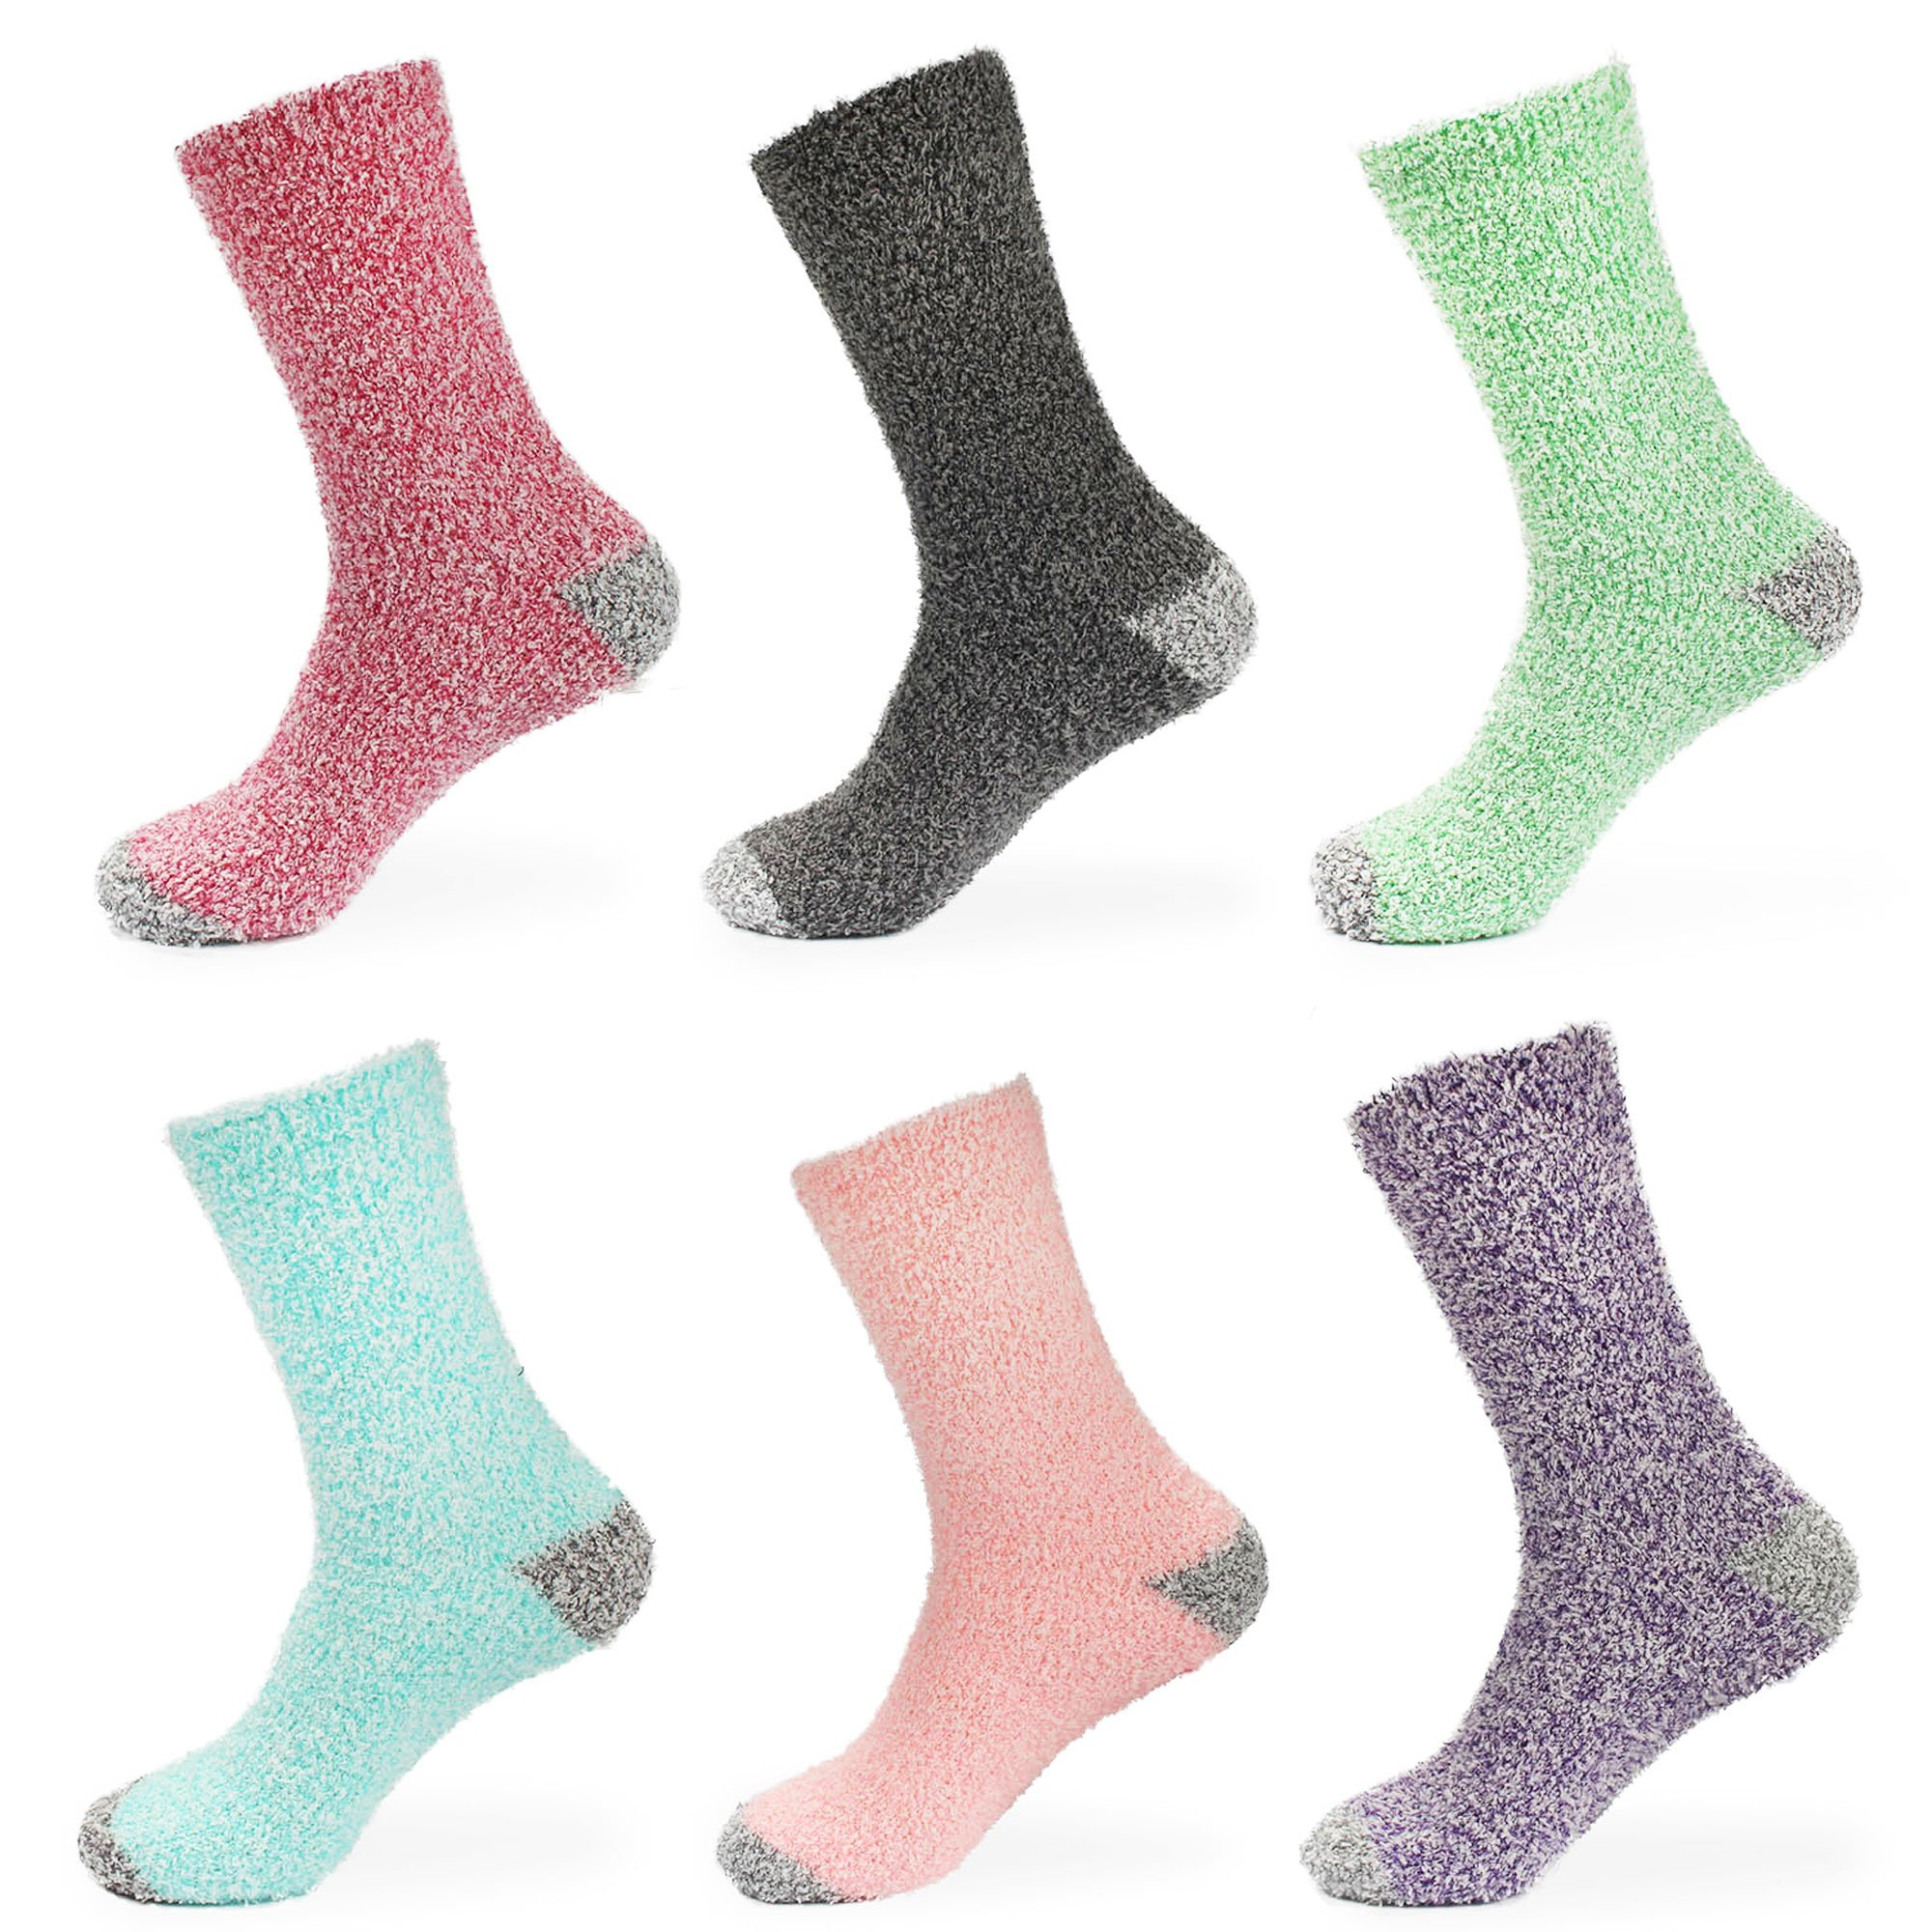 BambooMN Women's Soft Fuzzy Warm Cozy Striped Solid Socks - 6 Pair Assorted Value Packs